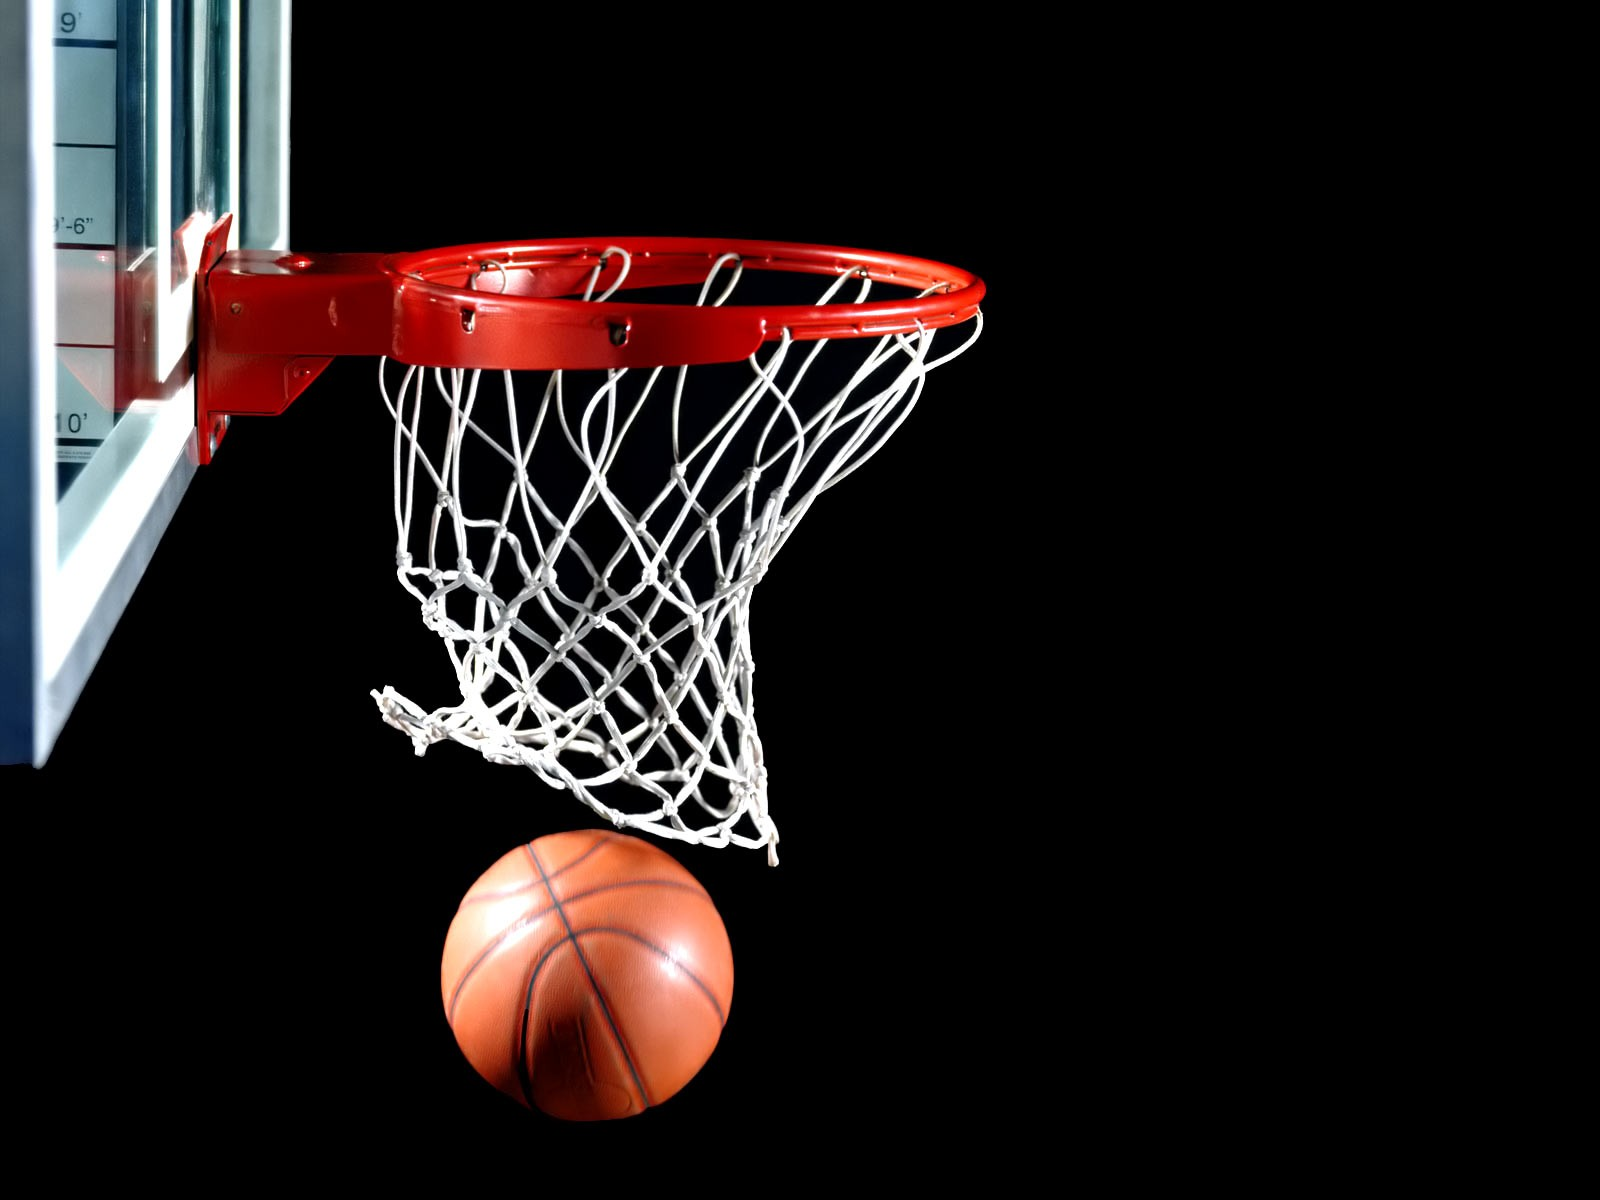 Awesome Basketball HD Desktop Wallpapers| HD Wallpapers ...